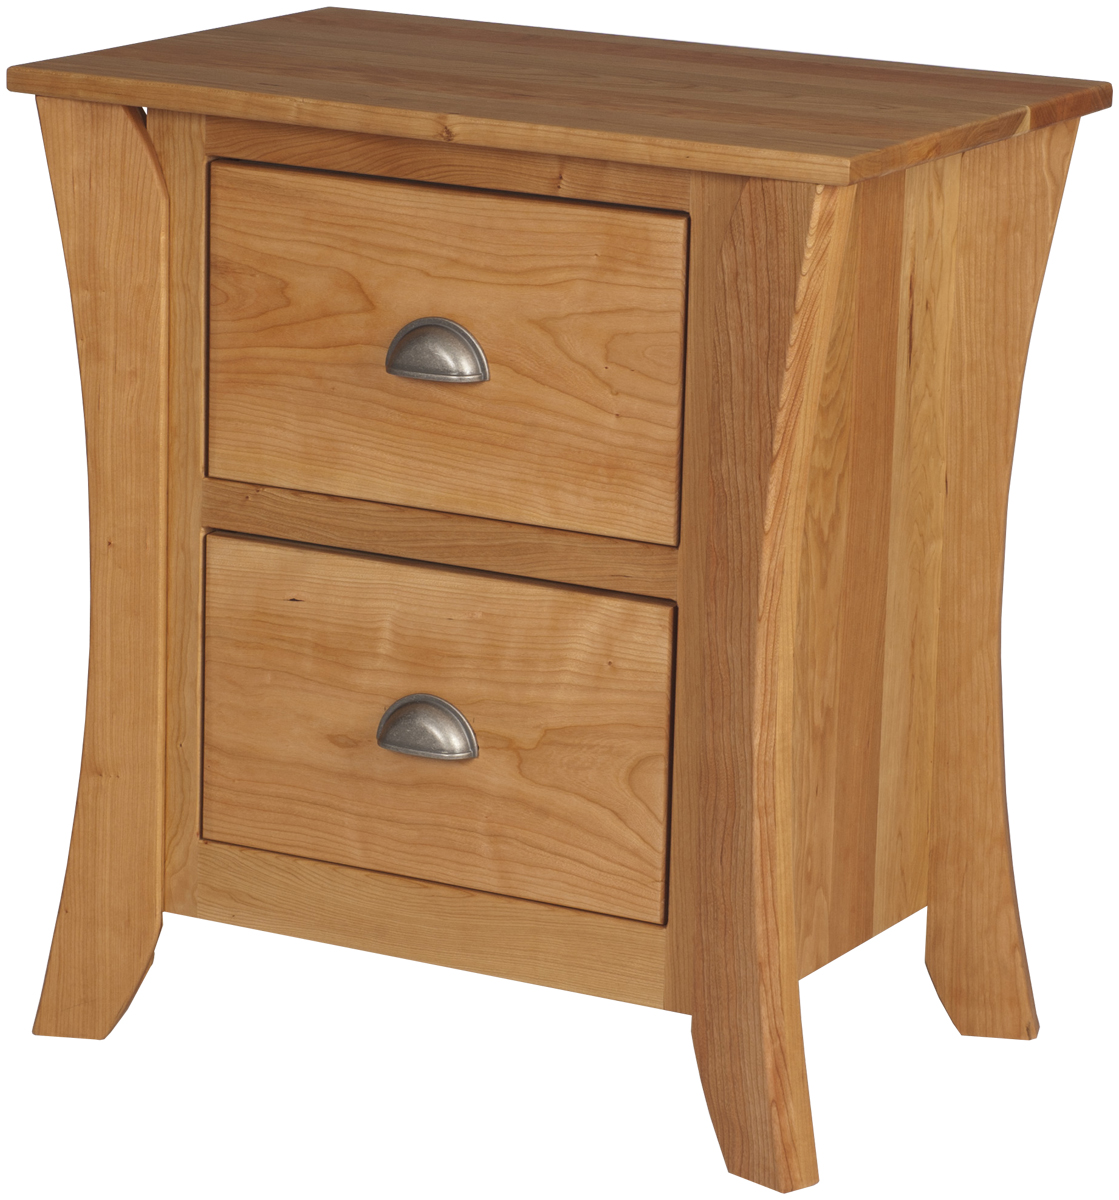 Kyoto nightstand with drawers solid wood nightstand in for Wood nightstand with drawers